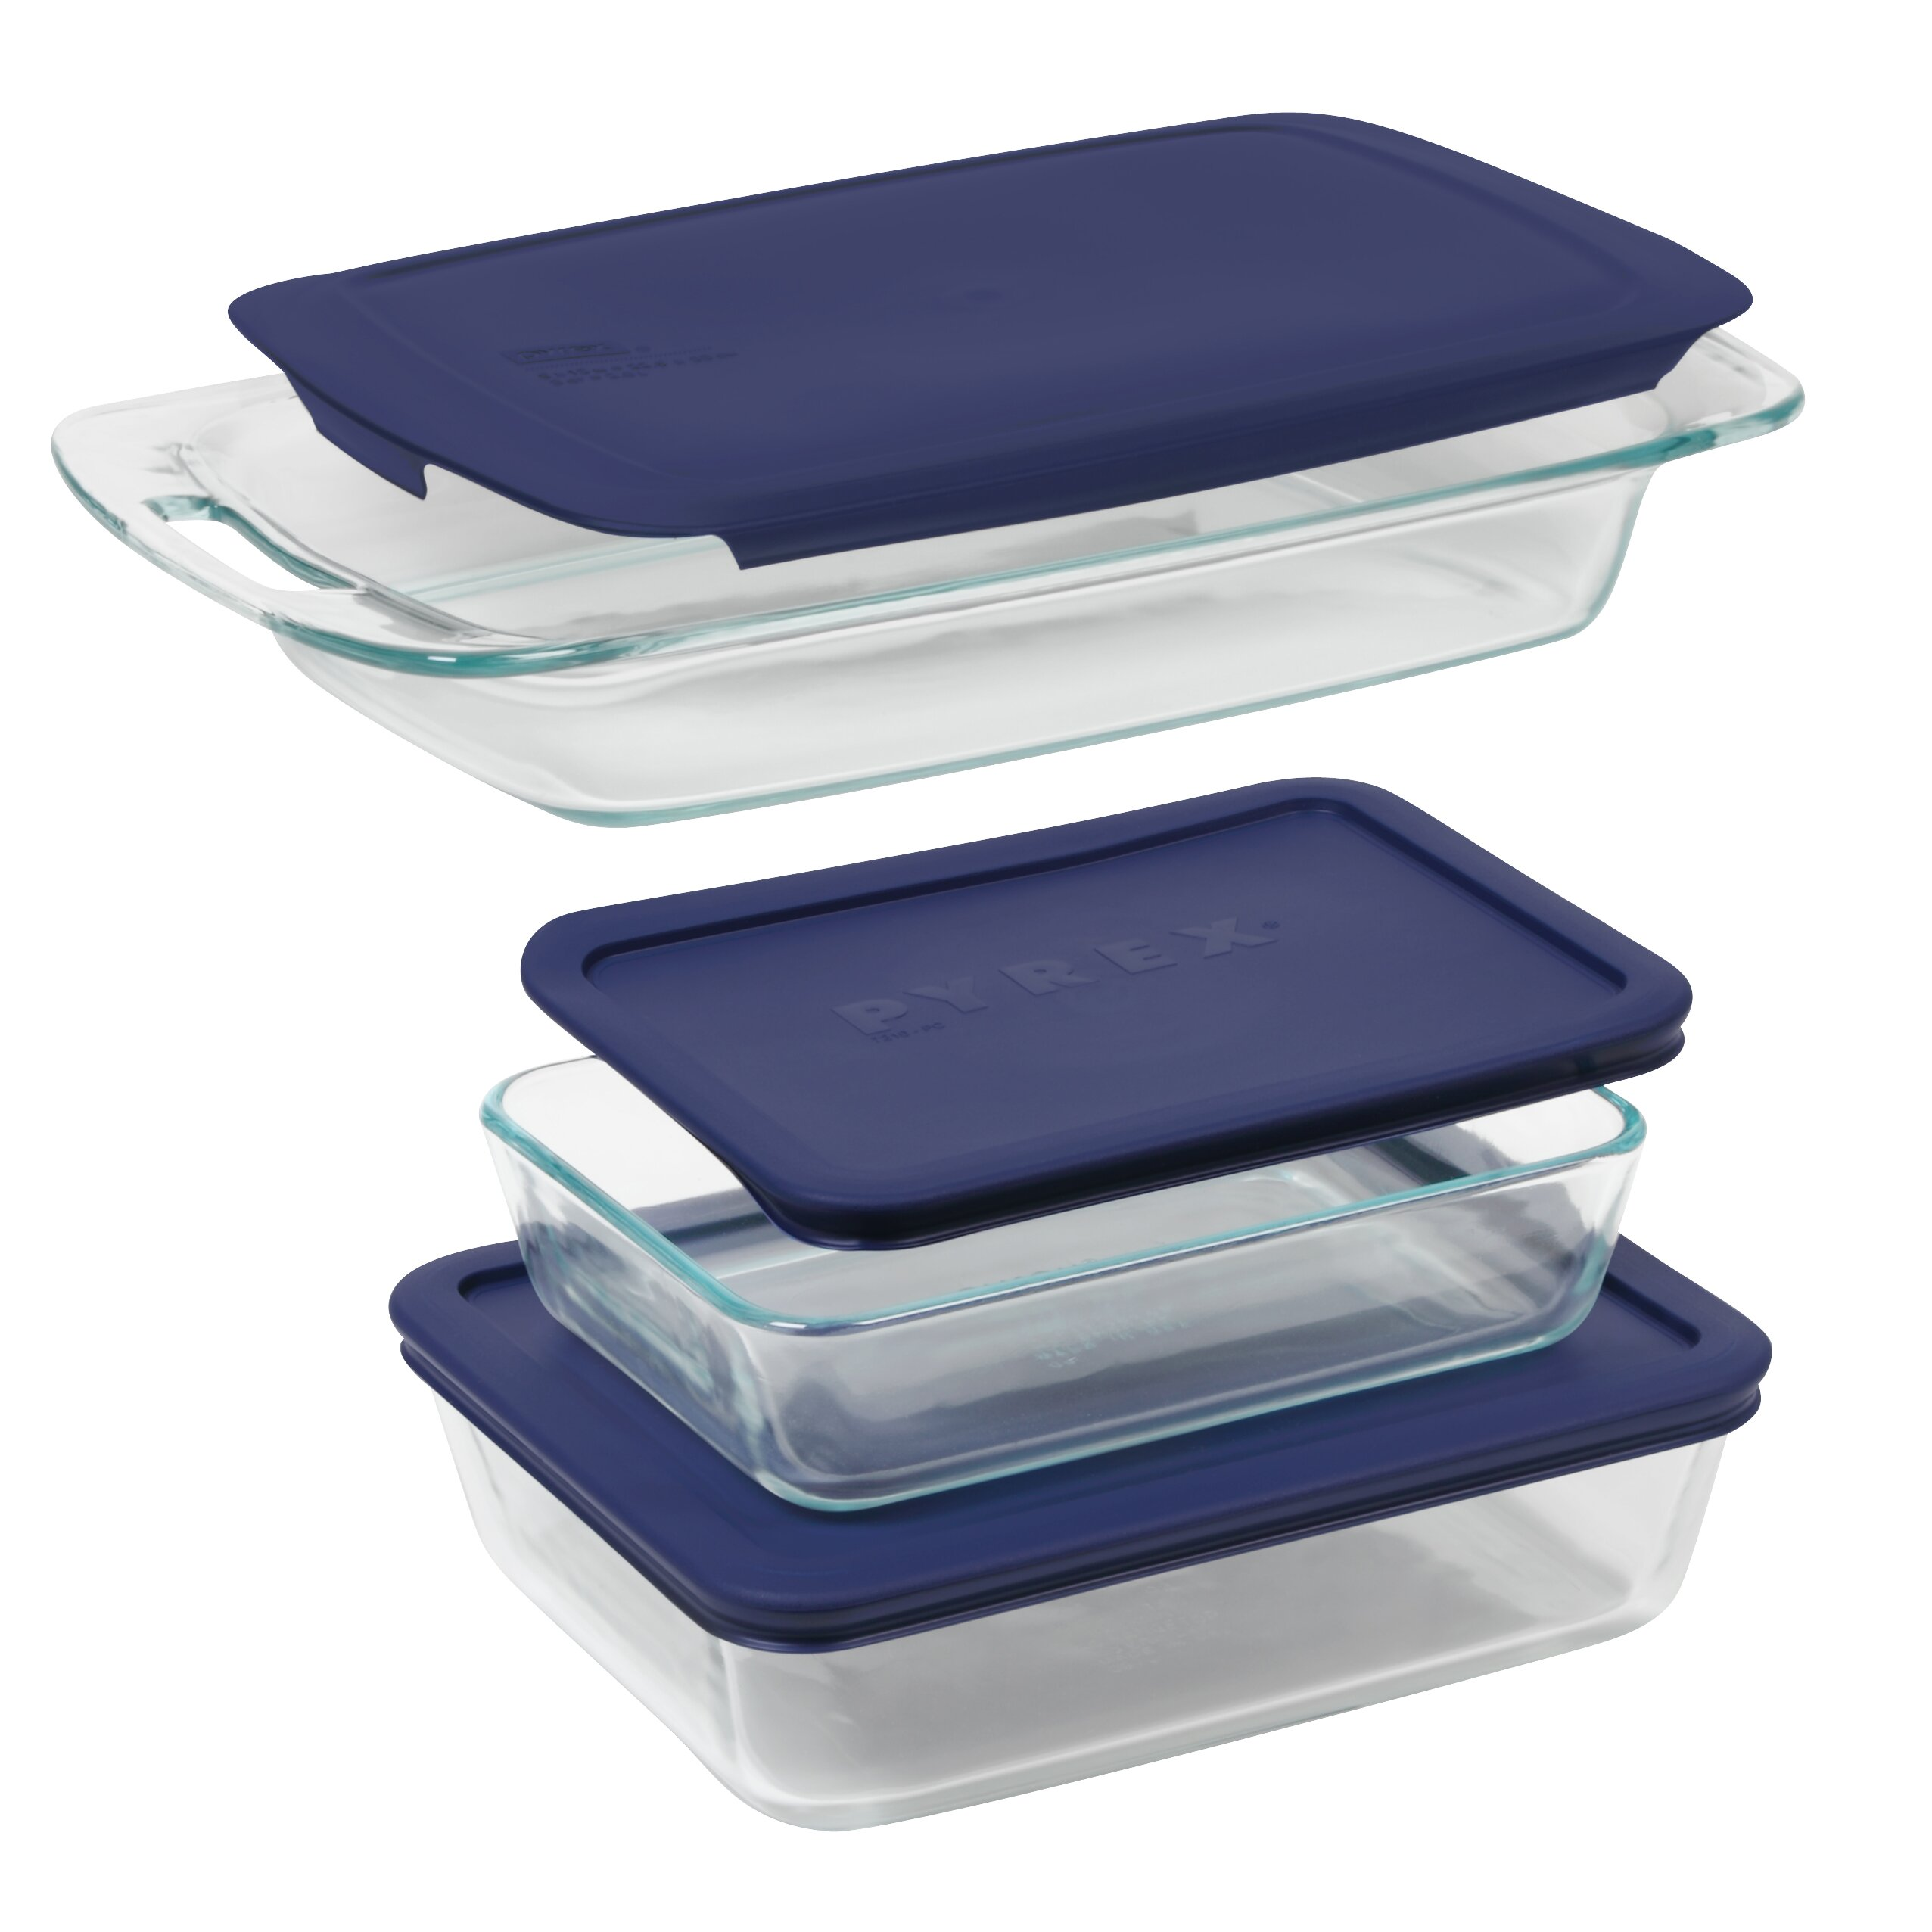 Pyrex Easy Grab 6 Piece Bakeware Set Amp Reviews Wayfair